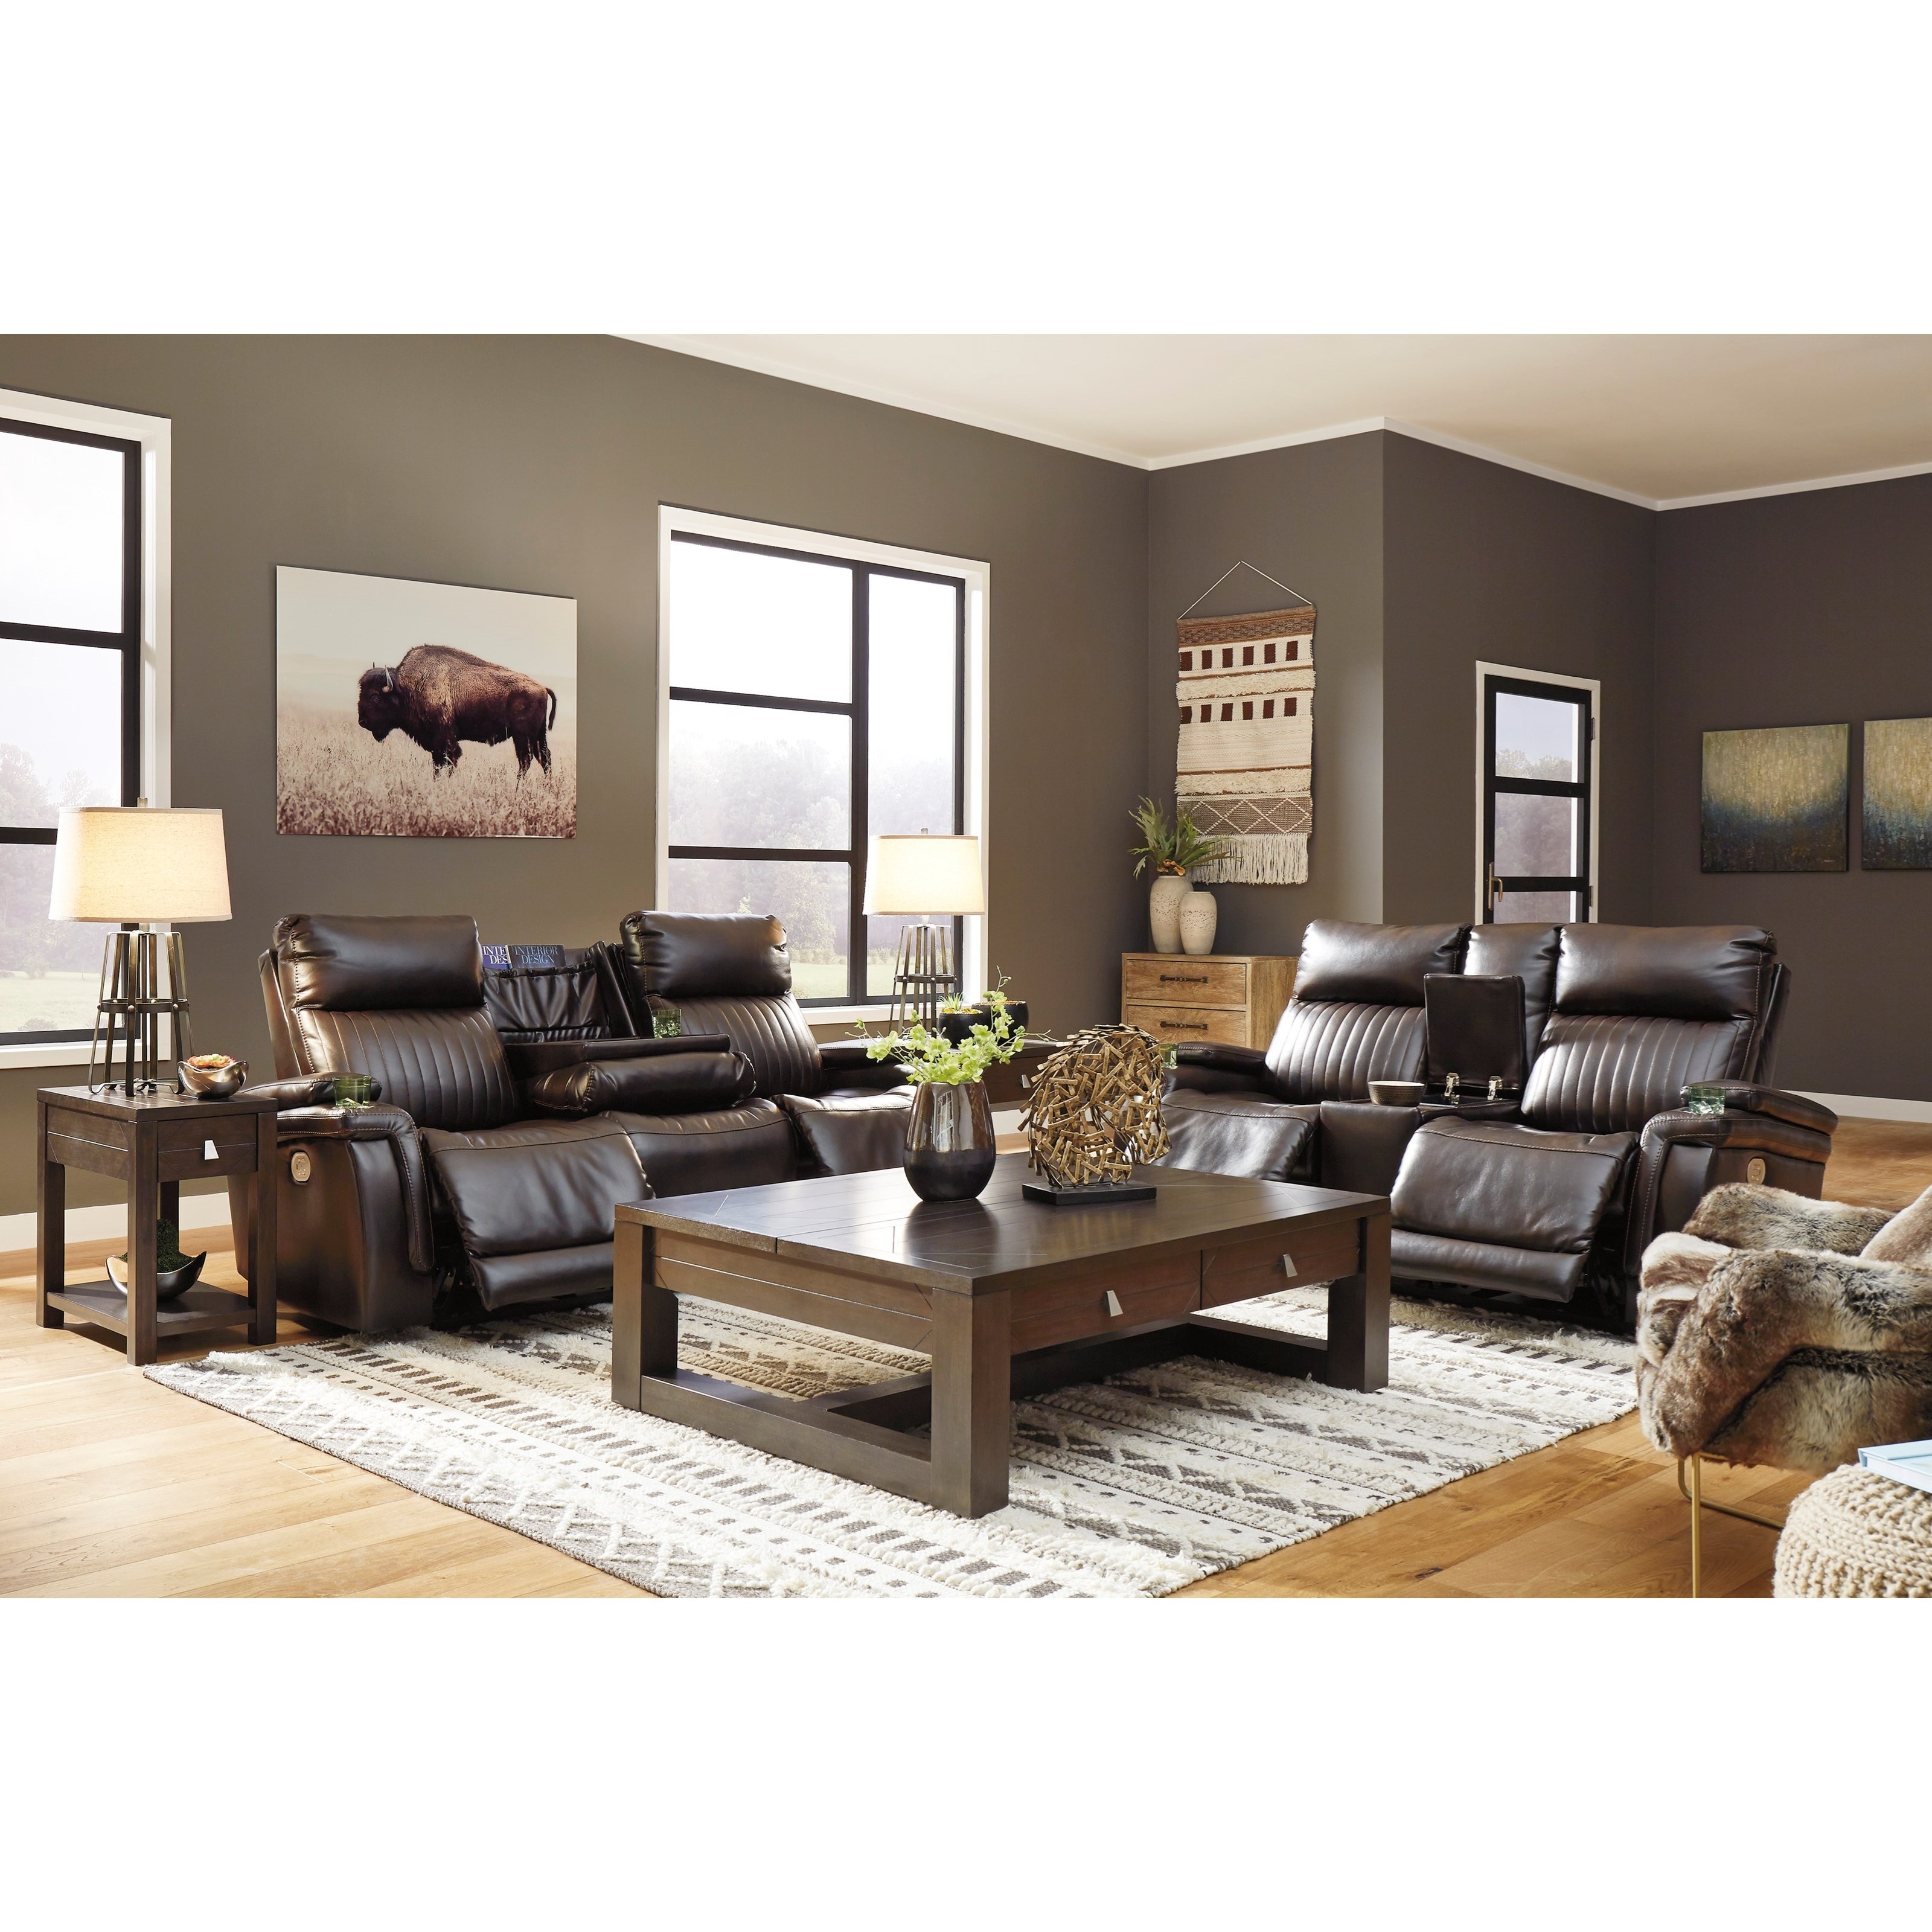 Team Time Reclining Living Room Group by Signature Design by Ashley at Northeast Factory Direct